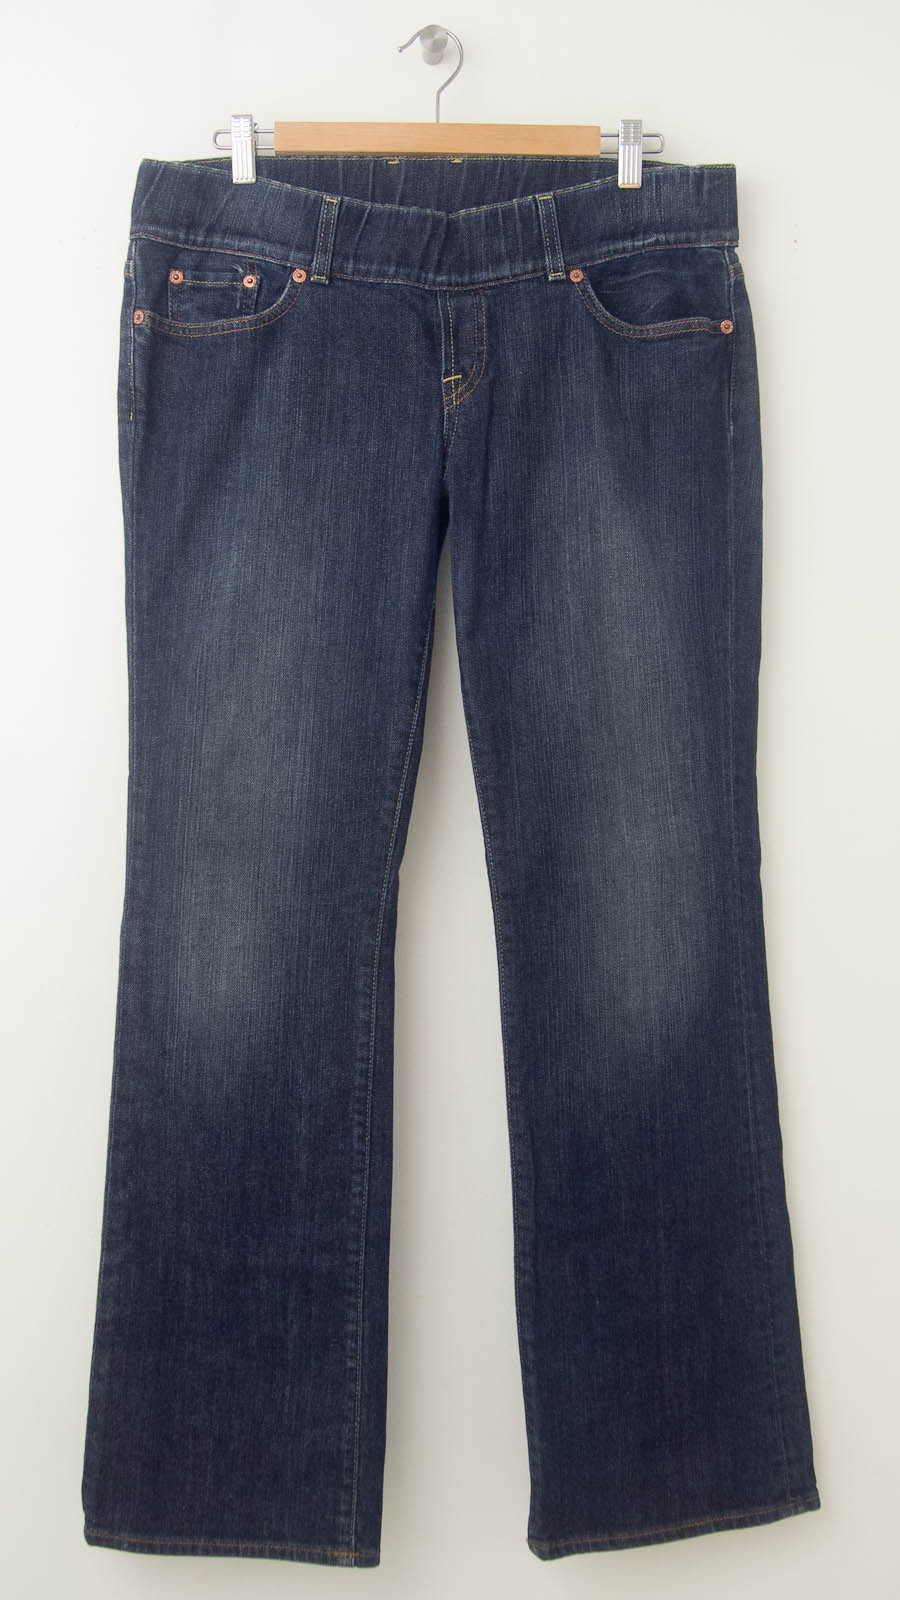 a61574eb1aa90 Lucky Brand Lil Maggie Maternity Jean Jeans Women's S - Small